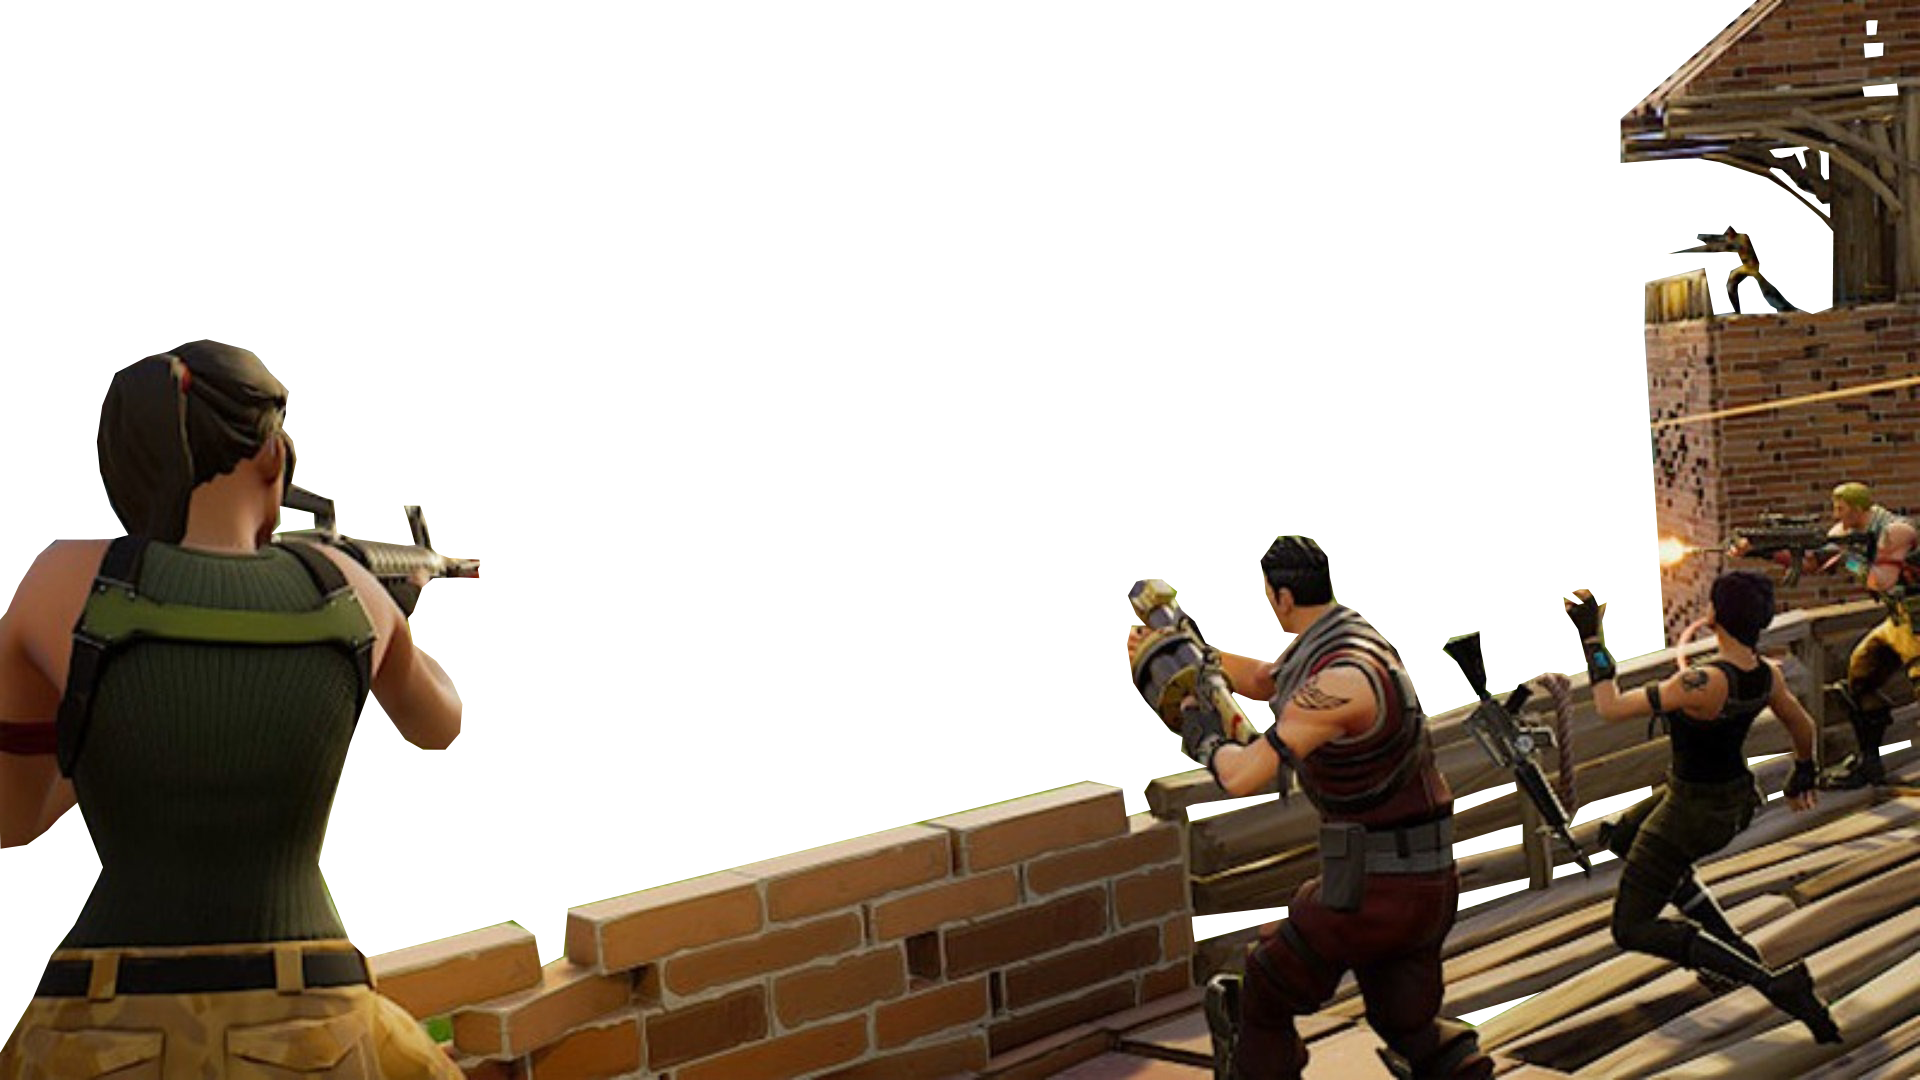 Fighting Fortnite Youtube Thumbnail Template Png Image Purepng